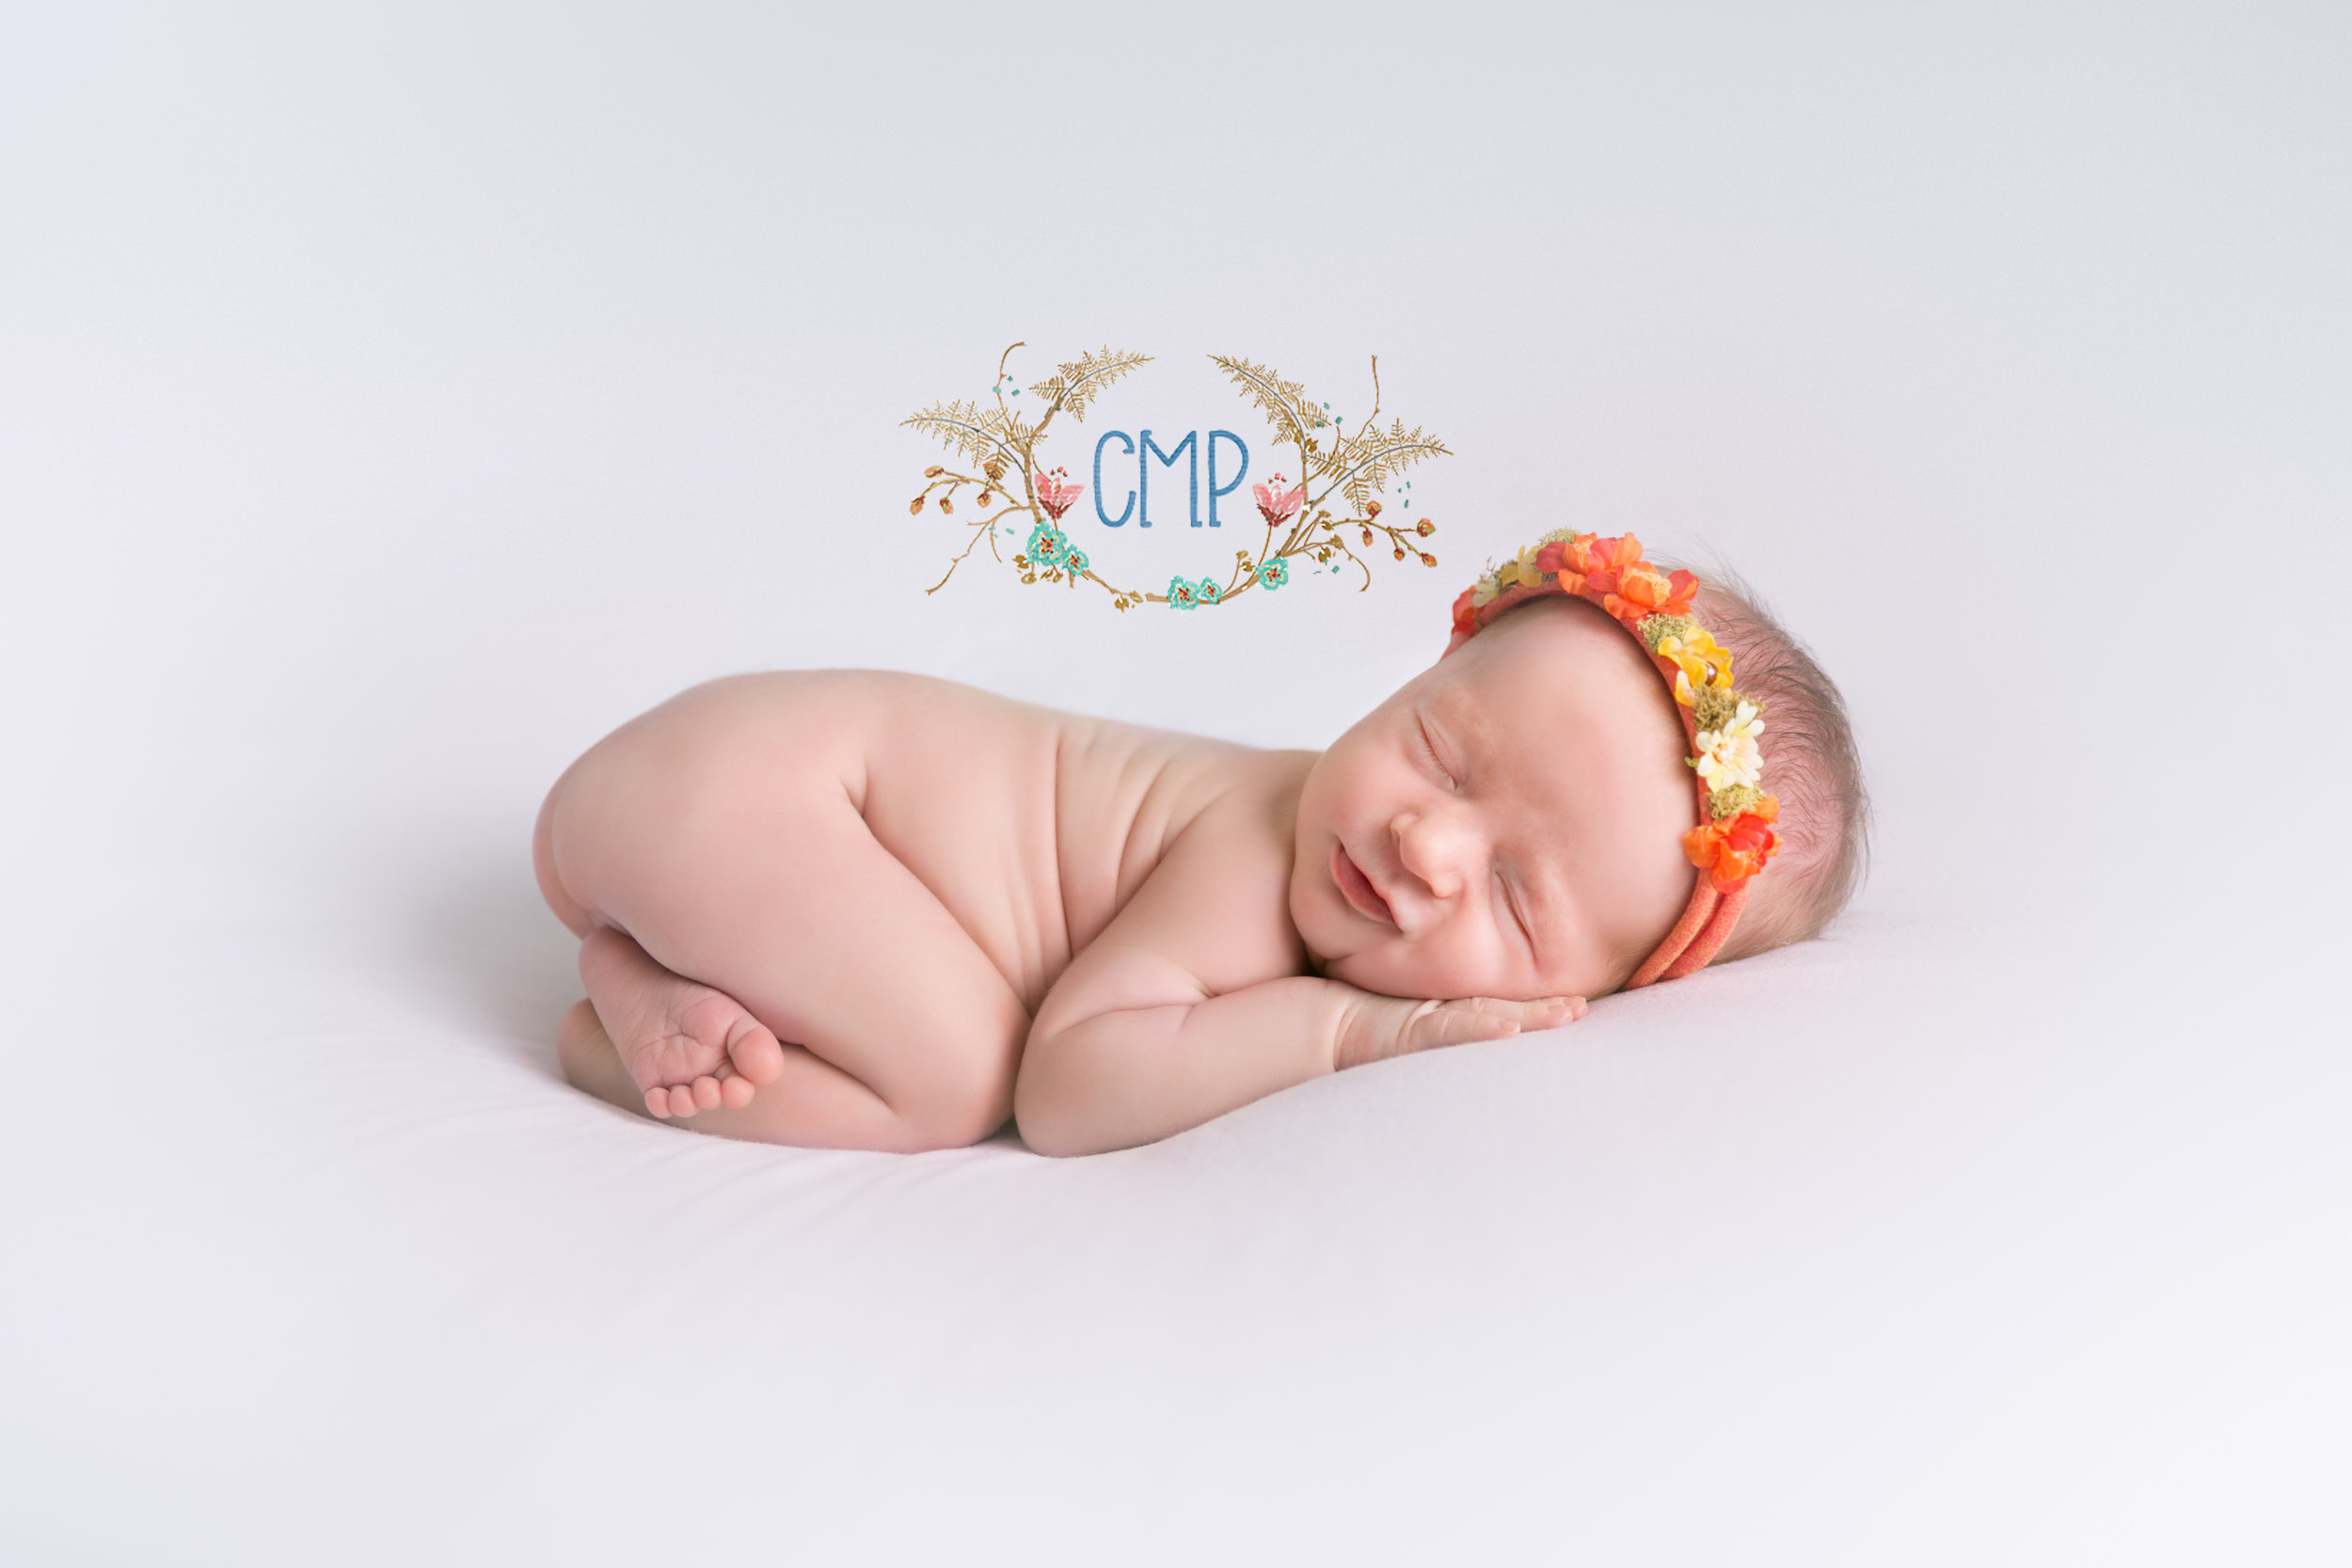 54_Shea_Raelyn_newborn-Edit.jpg